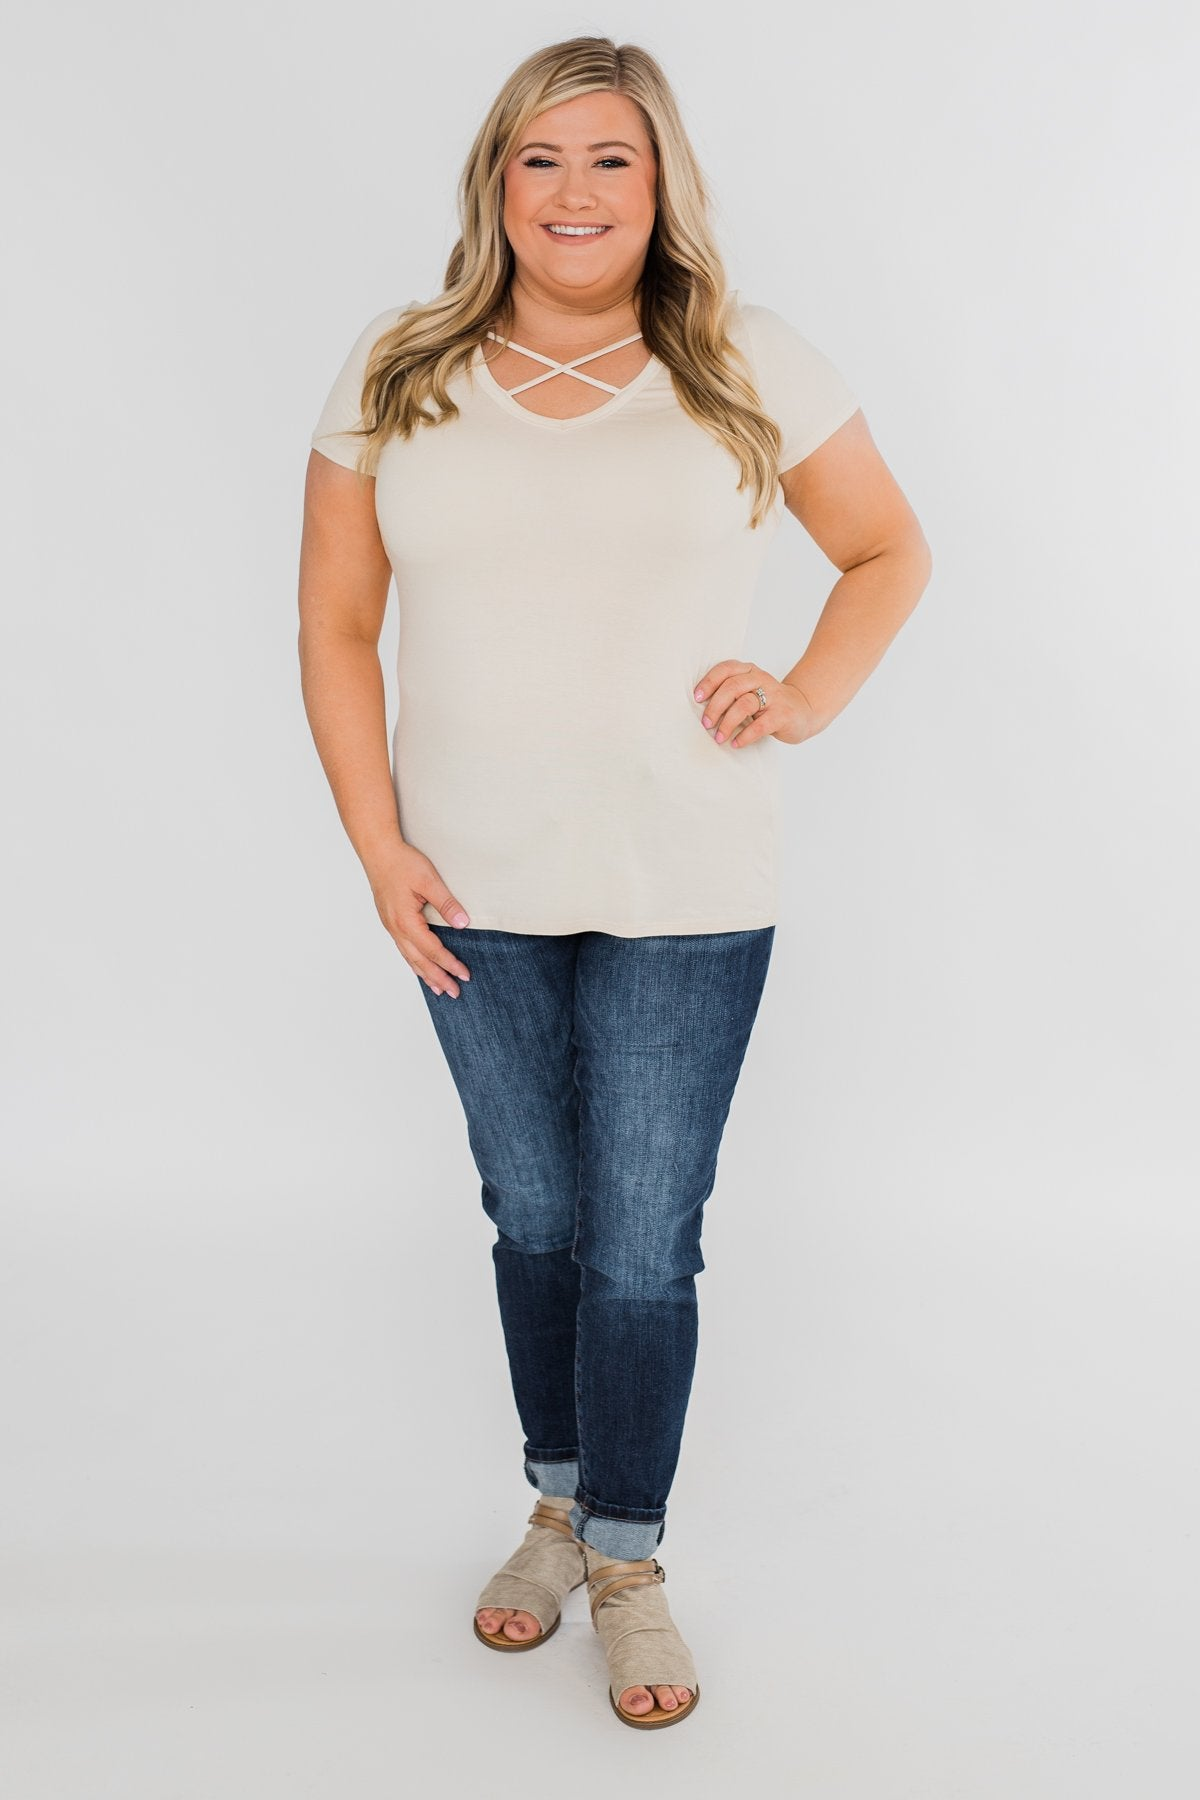 Meet Me Here Short Sleeve Top- Light Tan